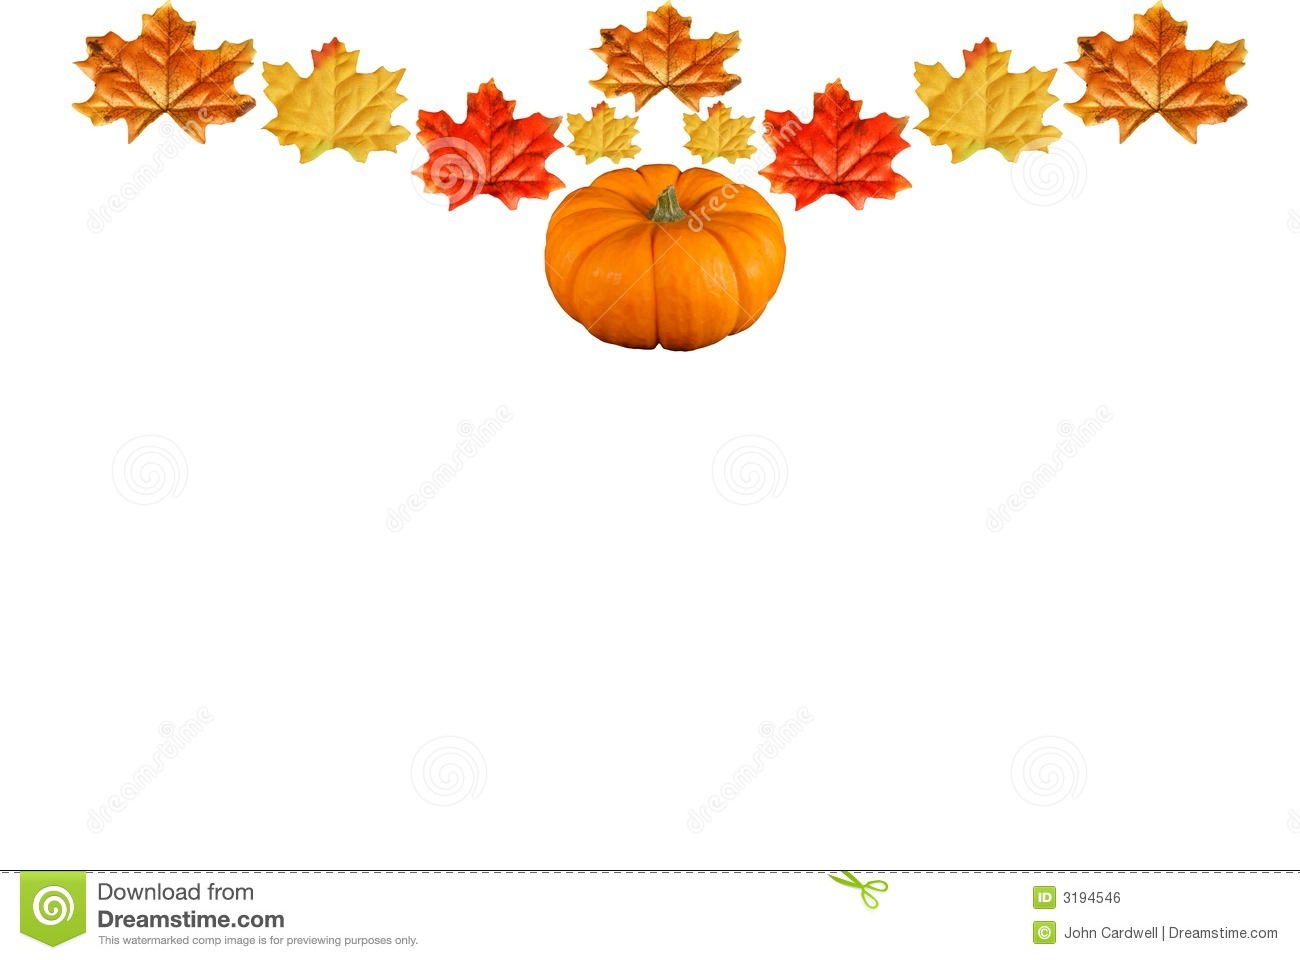 Pumpkin With Fall Leaves Royalty Free Stock Image - Image ...